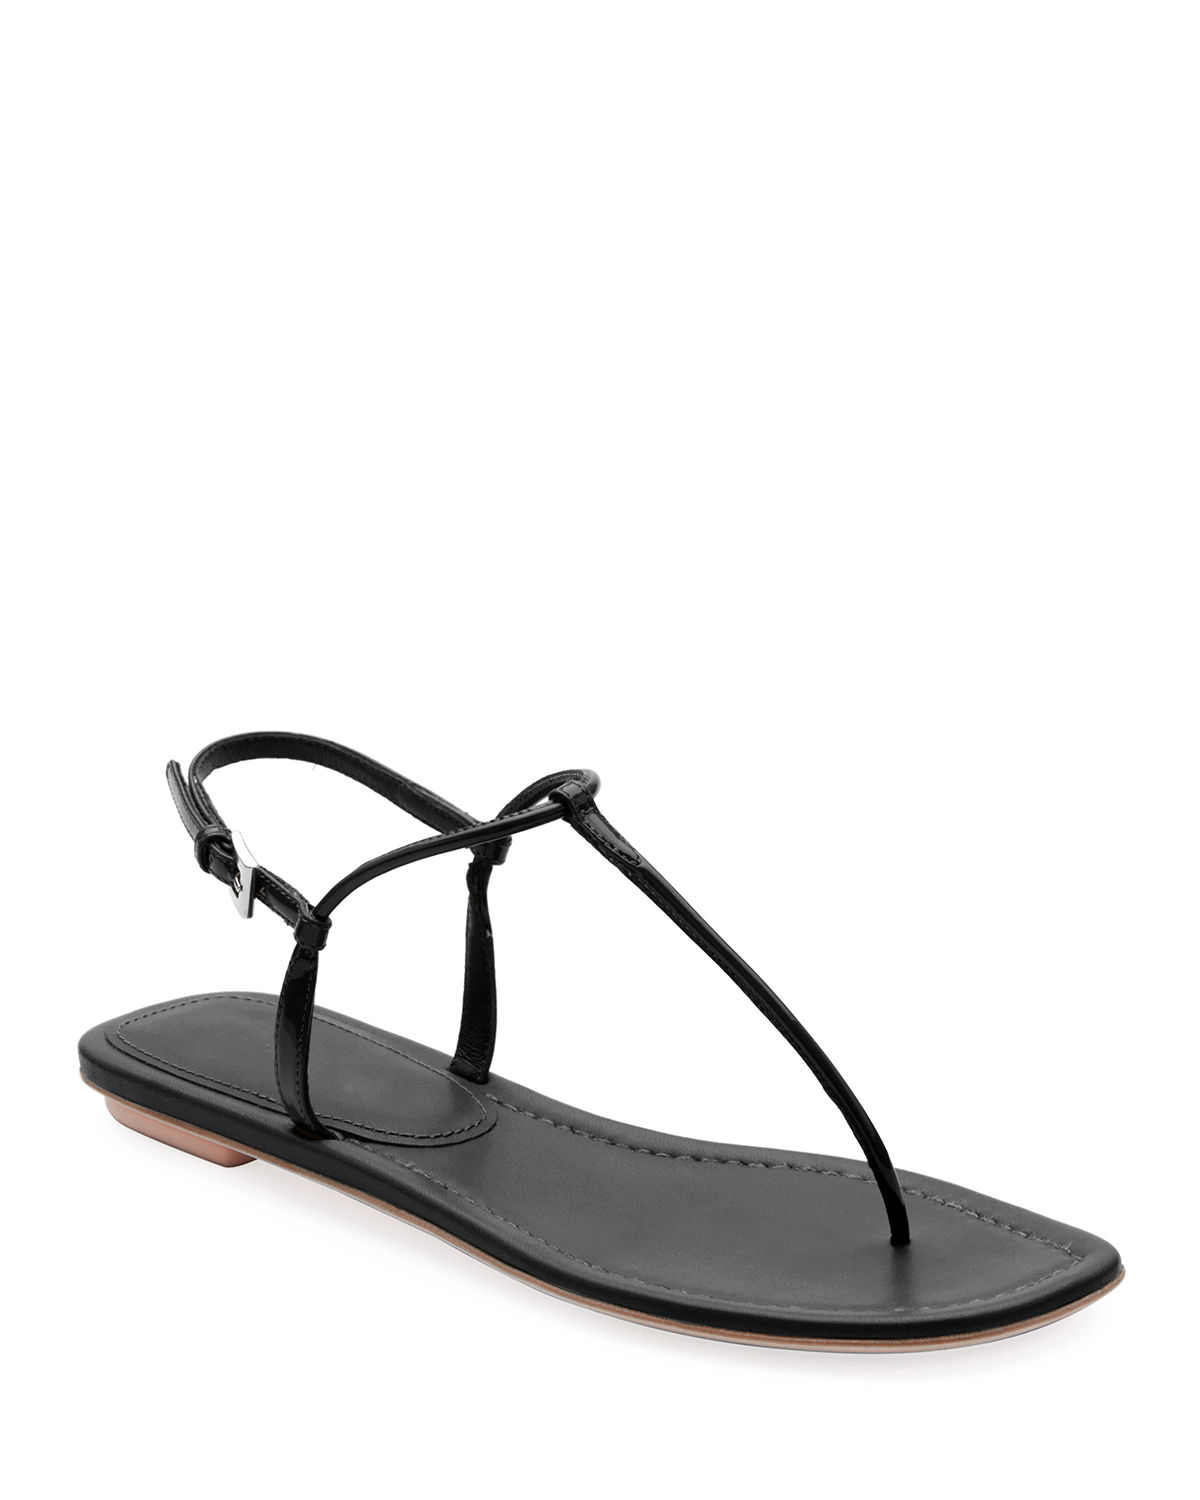 7002e035bbe41 Prada Flat Patent Leather Thong Sandals | Neiman Marcus